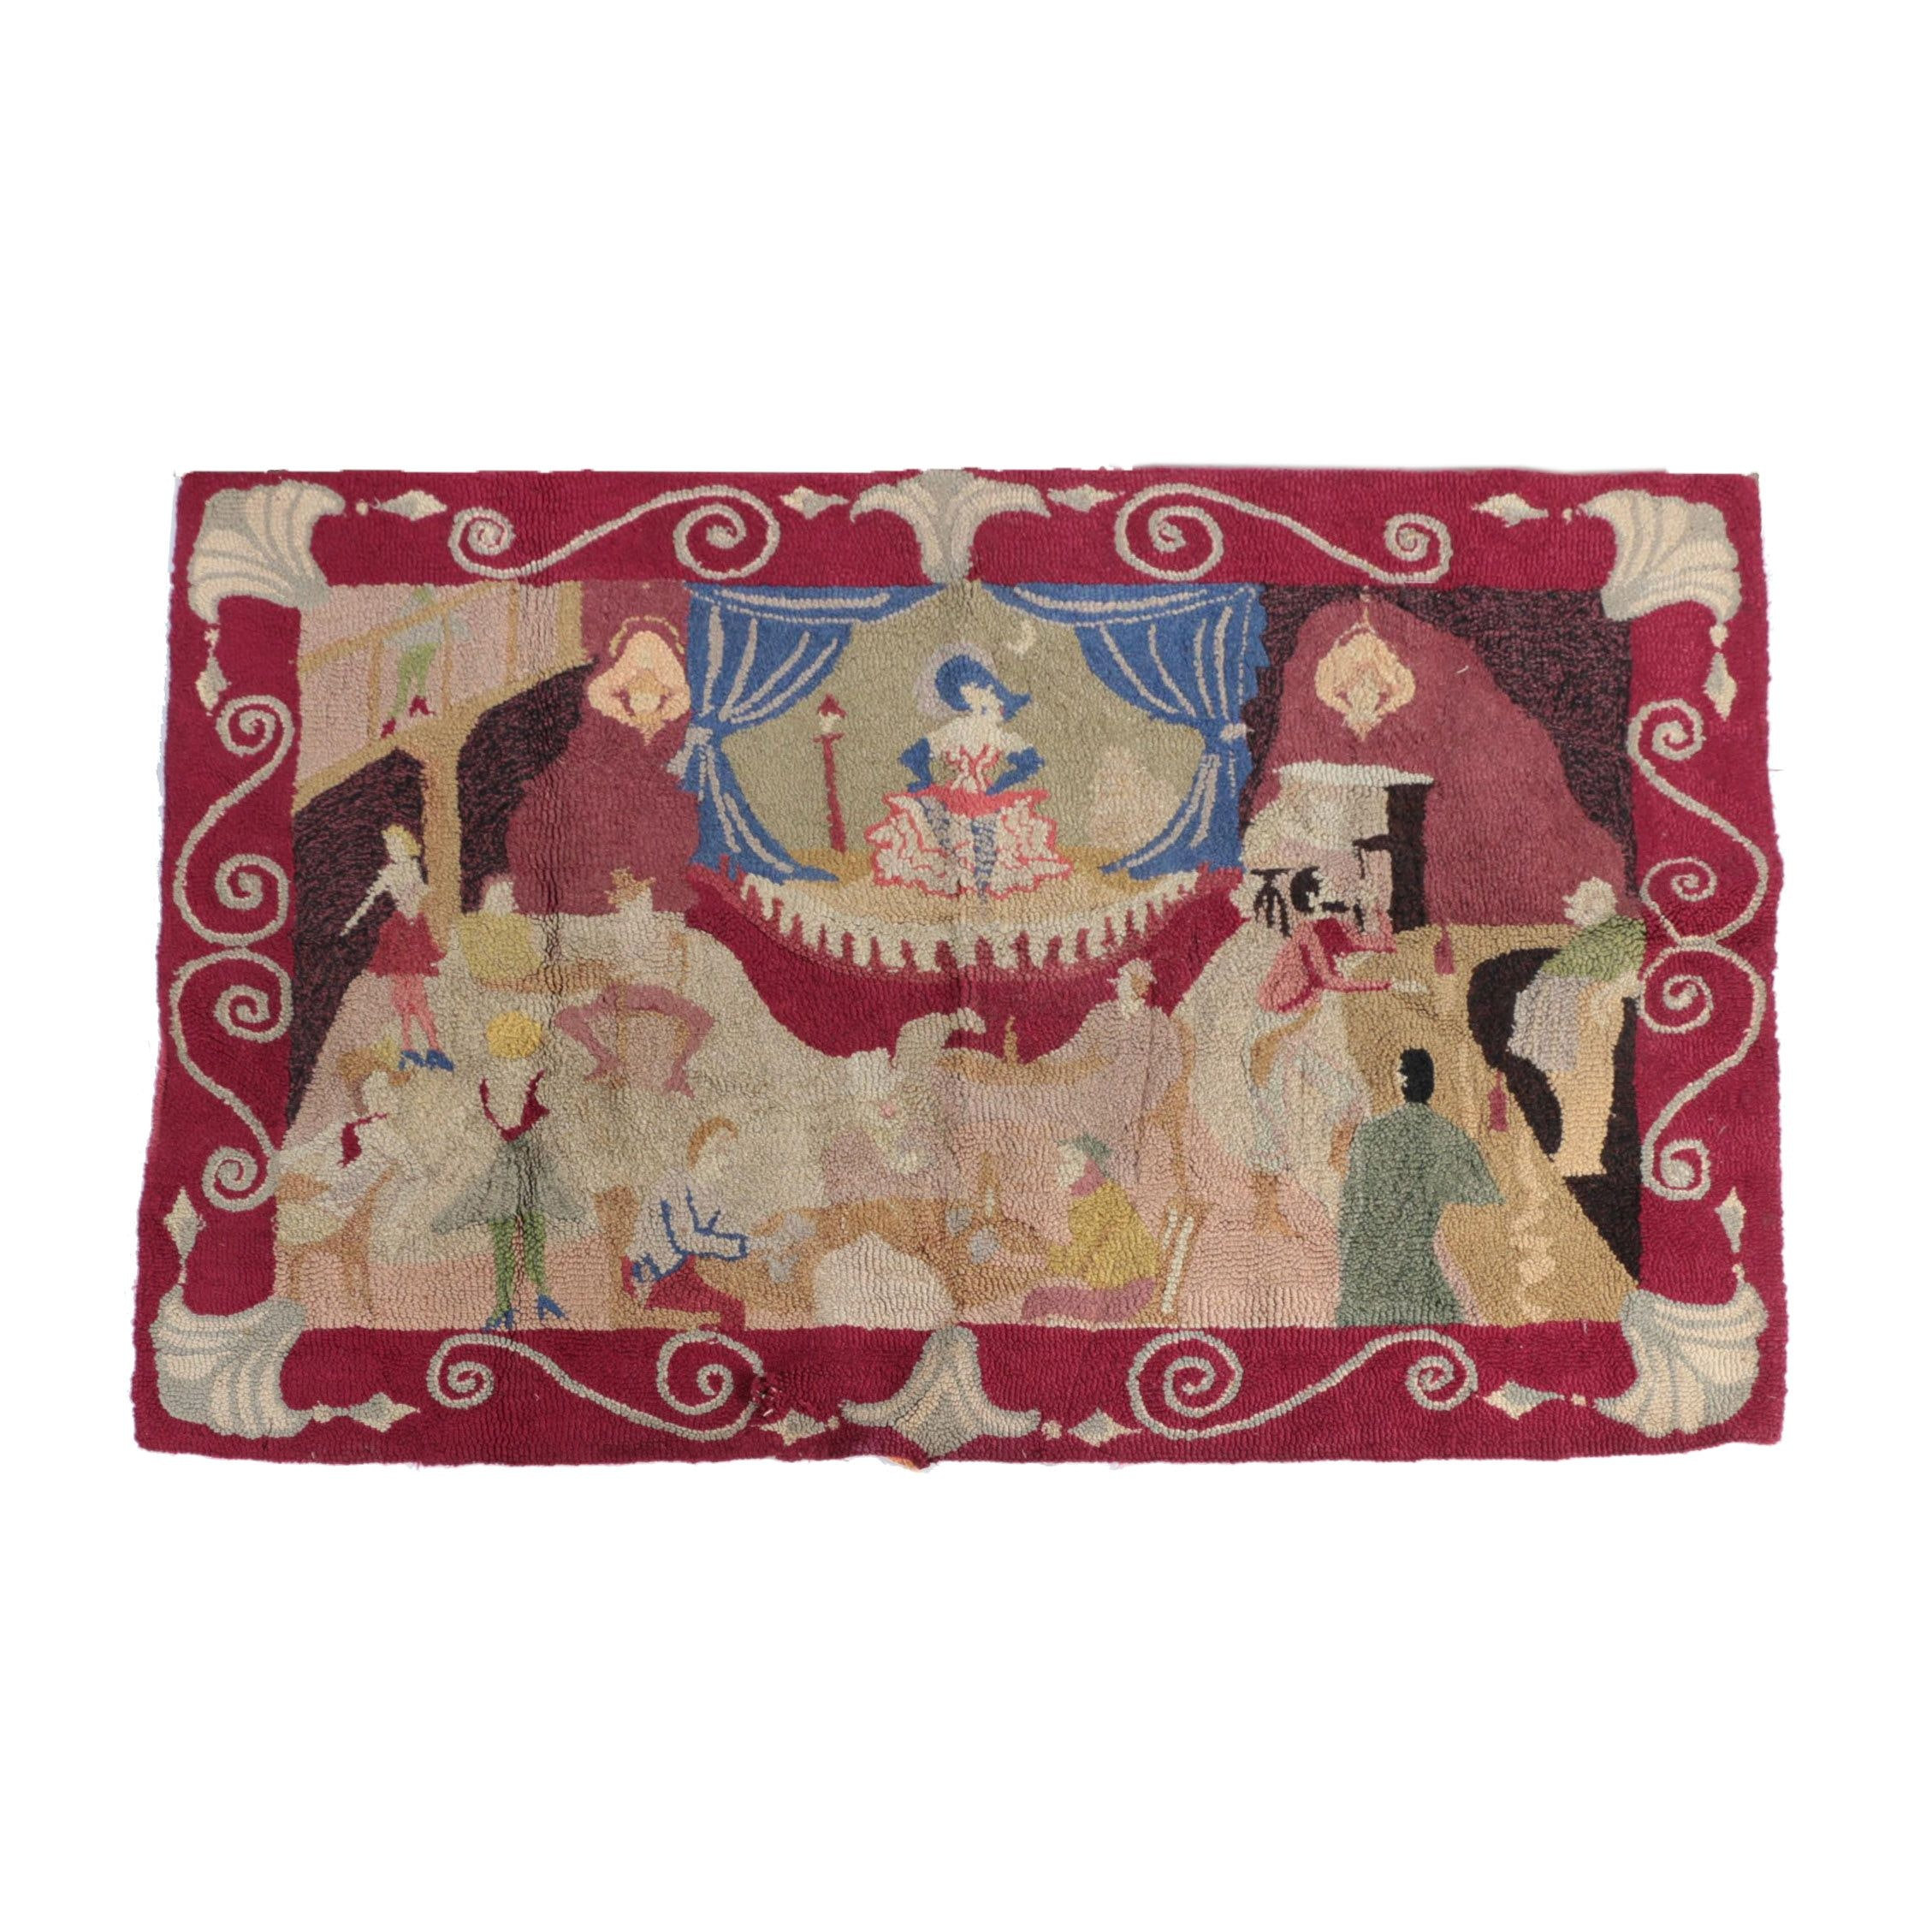 Hand-Hooked Pictorial Wool Area Rug